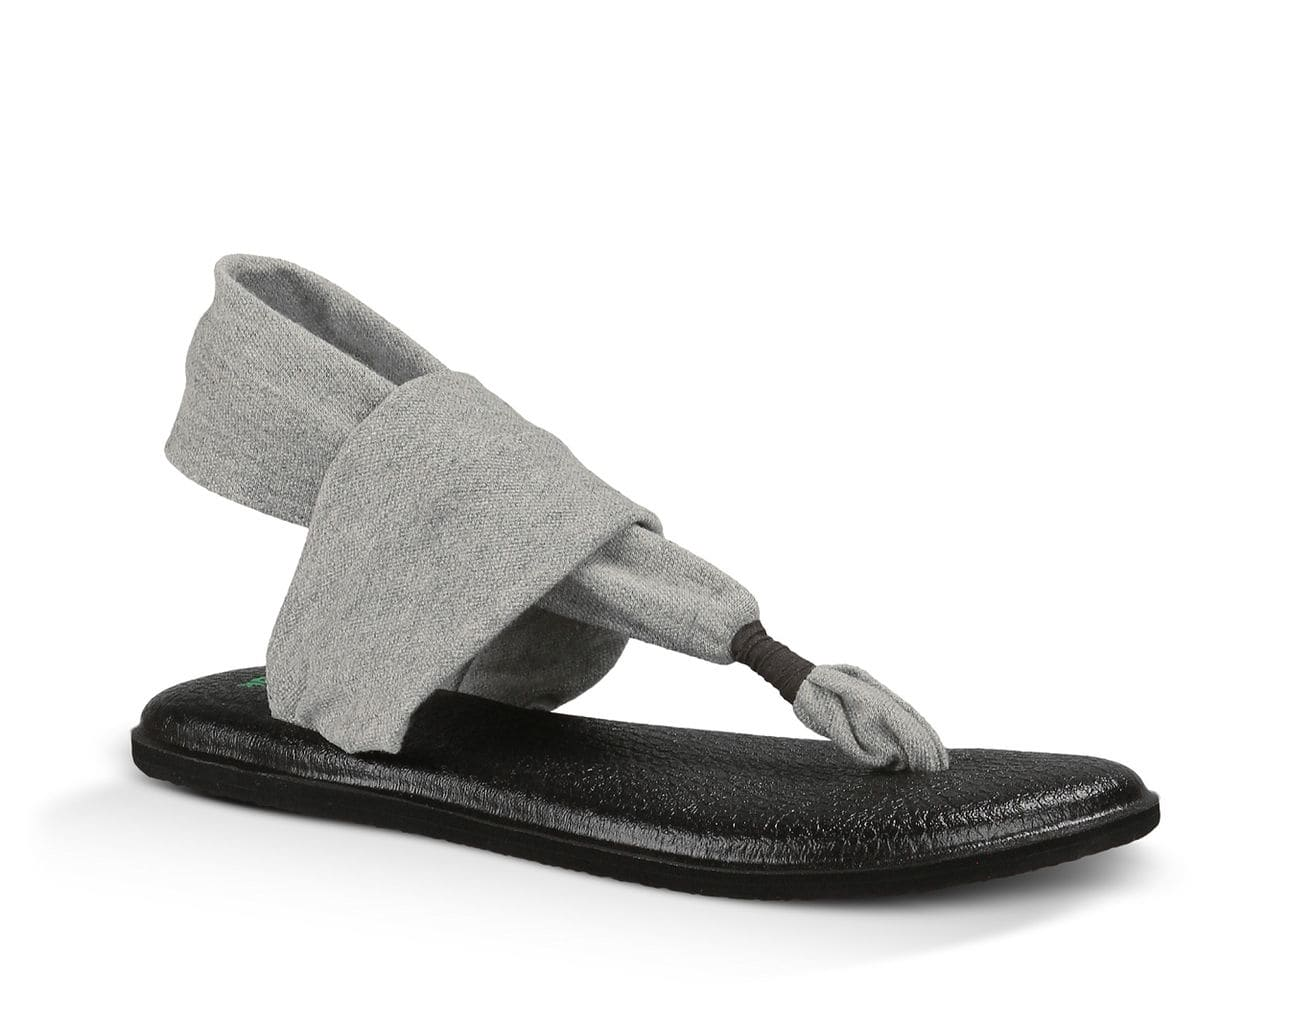 Sanuk Thong Sandals Sale! Shop nmuiakbosczpl.ga's huge selection of Sanuk Thong Sandals and save big! Over 50 styles available. FREE Shipping & Exchanges, and a % price guarantee!